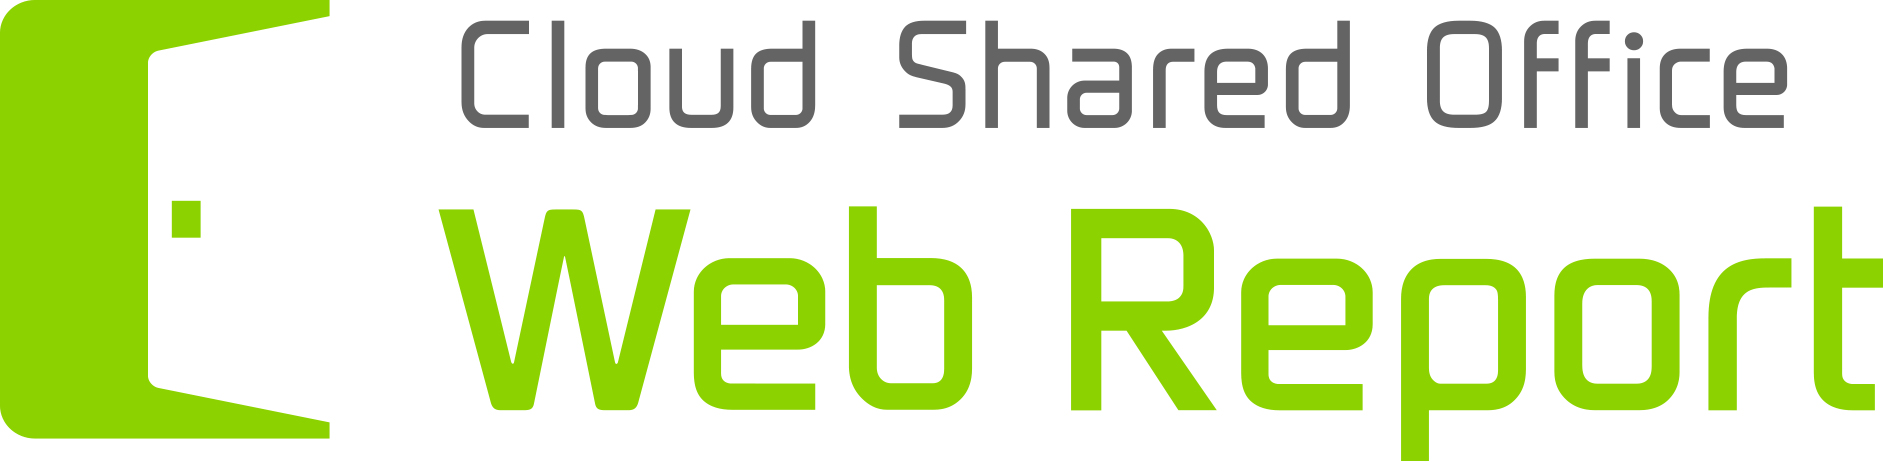 CloudSharedOfficeWebReport